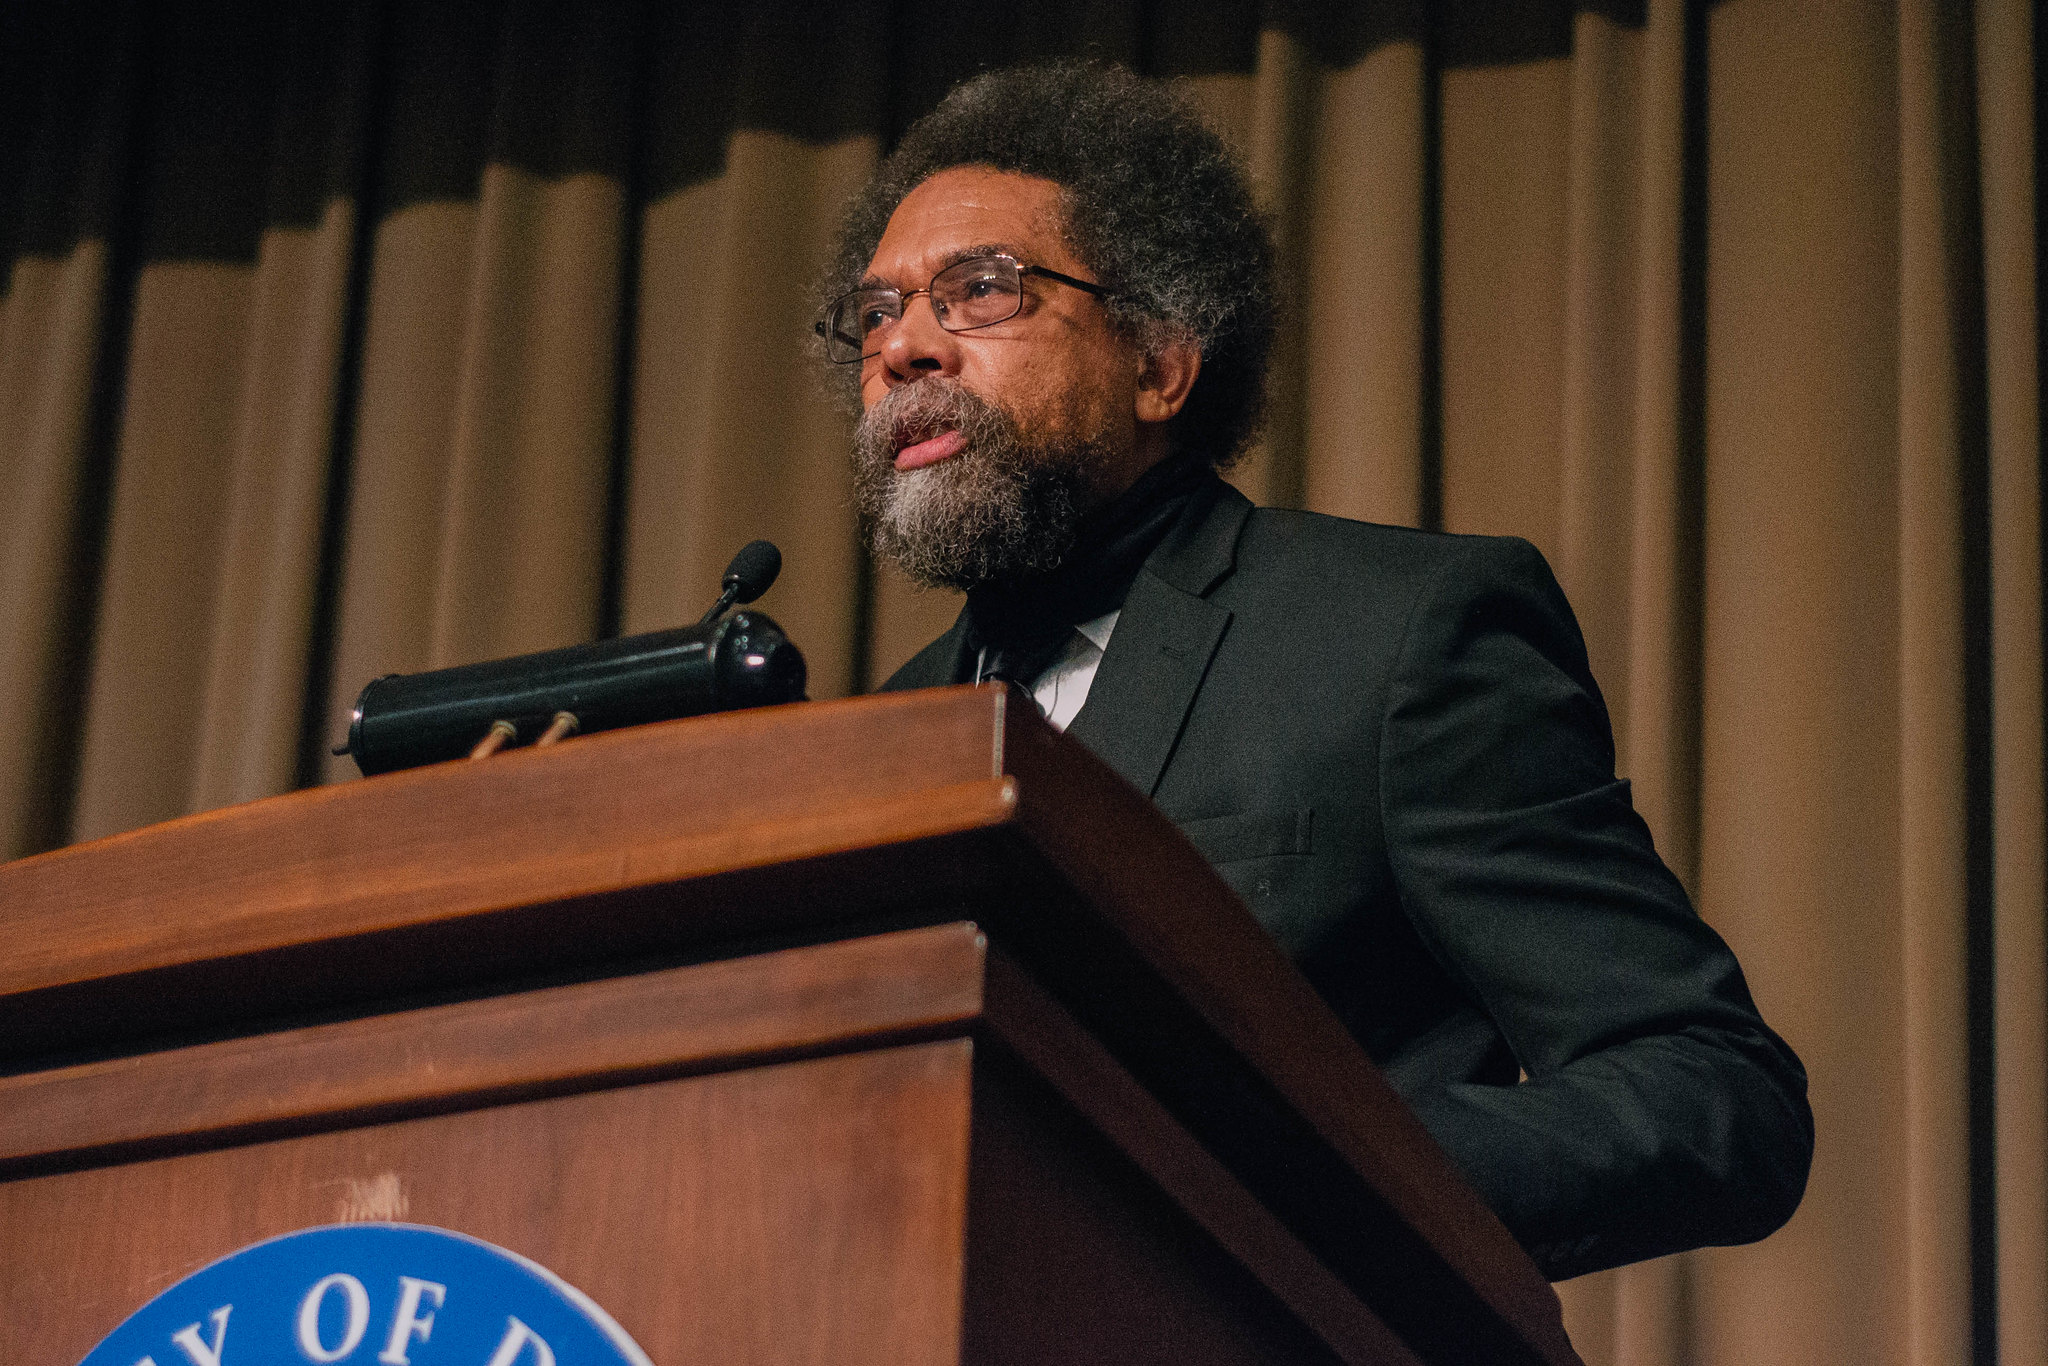 Cornel West featured as keynote speaker in symposium series